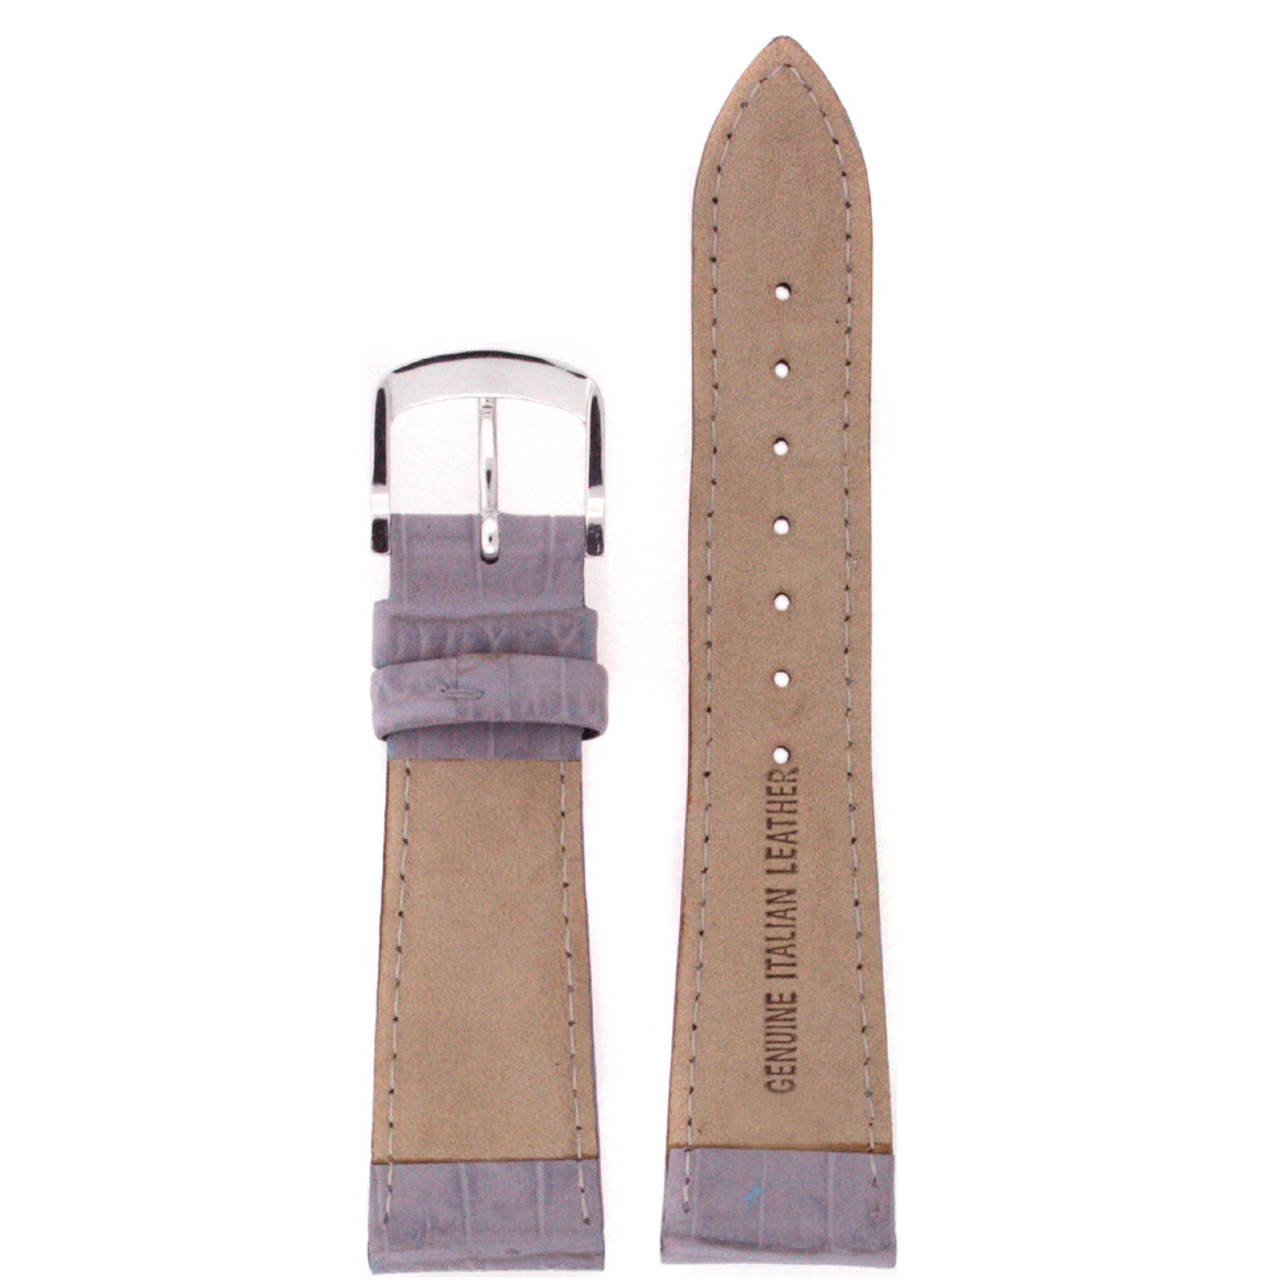 Leather Watch band in Lavender - Bottom View - Main